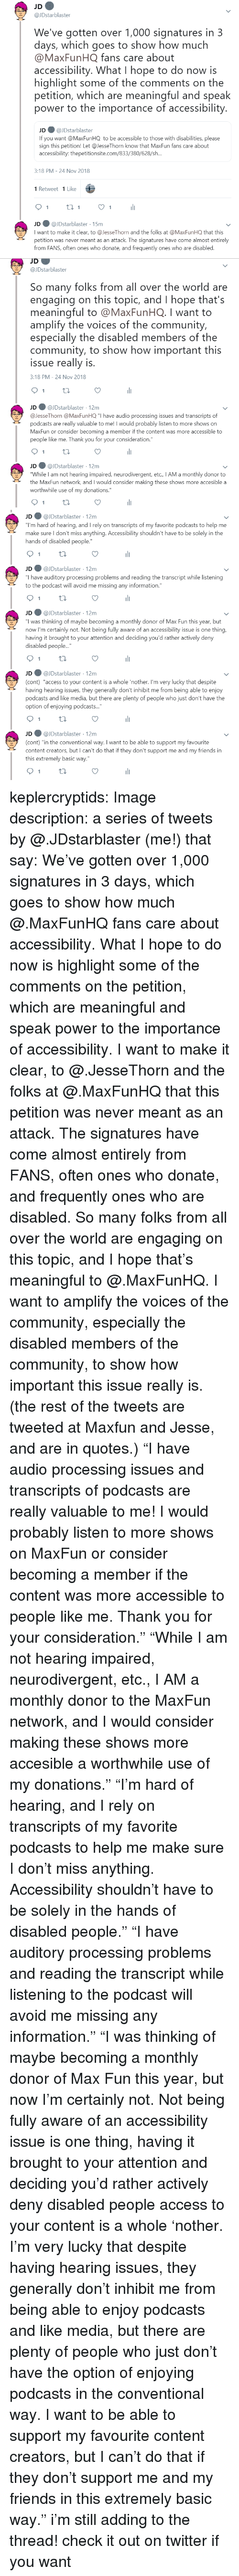 """Community, Friends, and Target: JDstarblaster  We've gotten over 1,000 signatures in 3  days, which goes to show how much  @MaxFunHQ fans care about  accessibility. What I hope to do now is  highlight some of the comments on the  petition, which are meaningful and speak  power to the importance of accessibility  JD ● @lDstarblaster  If you want @MaxFunHQ to be accessible to those with disabilities, please  sign this petition! Let @JesseThorn know that MaxFun fans care about  accessibility: thepetitionsite.com/833/380/628/s...  3:18 PM-24 Nov 2018  1 Retweet 1 Like  JD @JDstarblaster 15m  I want to make it clear, to @JesseThorn and the folks at @MaxFunHQ that this  petition was never meant as an attack. The signatures have come almost entirely  from FANS, often ones who donate, and frequently ones who are disabled.   JD  @JDstarblaster  So many folks from all over the world are  engaging on this topic, and I hope that's  meaningful to @MaxFunHQ. I want to  amplify the voices of the community,  especially the disabled members of the  community, to show how important this  issue really is  3:18 PM-24 Nov 2018  JD ● @JDstarblaster· 12m  @lesseThorn @MaxFun HQ """"I have audio processing issues and transcripts of  о,  dcasts are really valuable to me! I would probably listen to more shows on  MaxFun or consider becoming a member if the content was more accessible to  people like me. Thank you for your consideration.""""  JD@JDstarblaster 12m  While I am not hearing impaired, neurodivergent, etc., IAM a monthly donor to  the MaxFun network, and I would consider making these shows more accesible a  worthwhile use of my donations.""""   JD@JDstarblaster 12m  ou""""I'm hard of hearing, and I rely on transcripts of my favorite podcasts to help me  make sure I don't miss anything. Accessibility shouldn't have to be solely in the  hands of disabled people  JD@JDstarblaster 12m  have auditory processing problems and reading the transcript while listening  to the podcast will avoid me missin"""